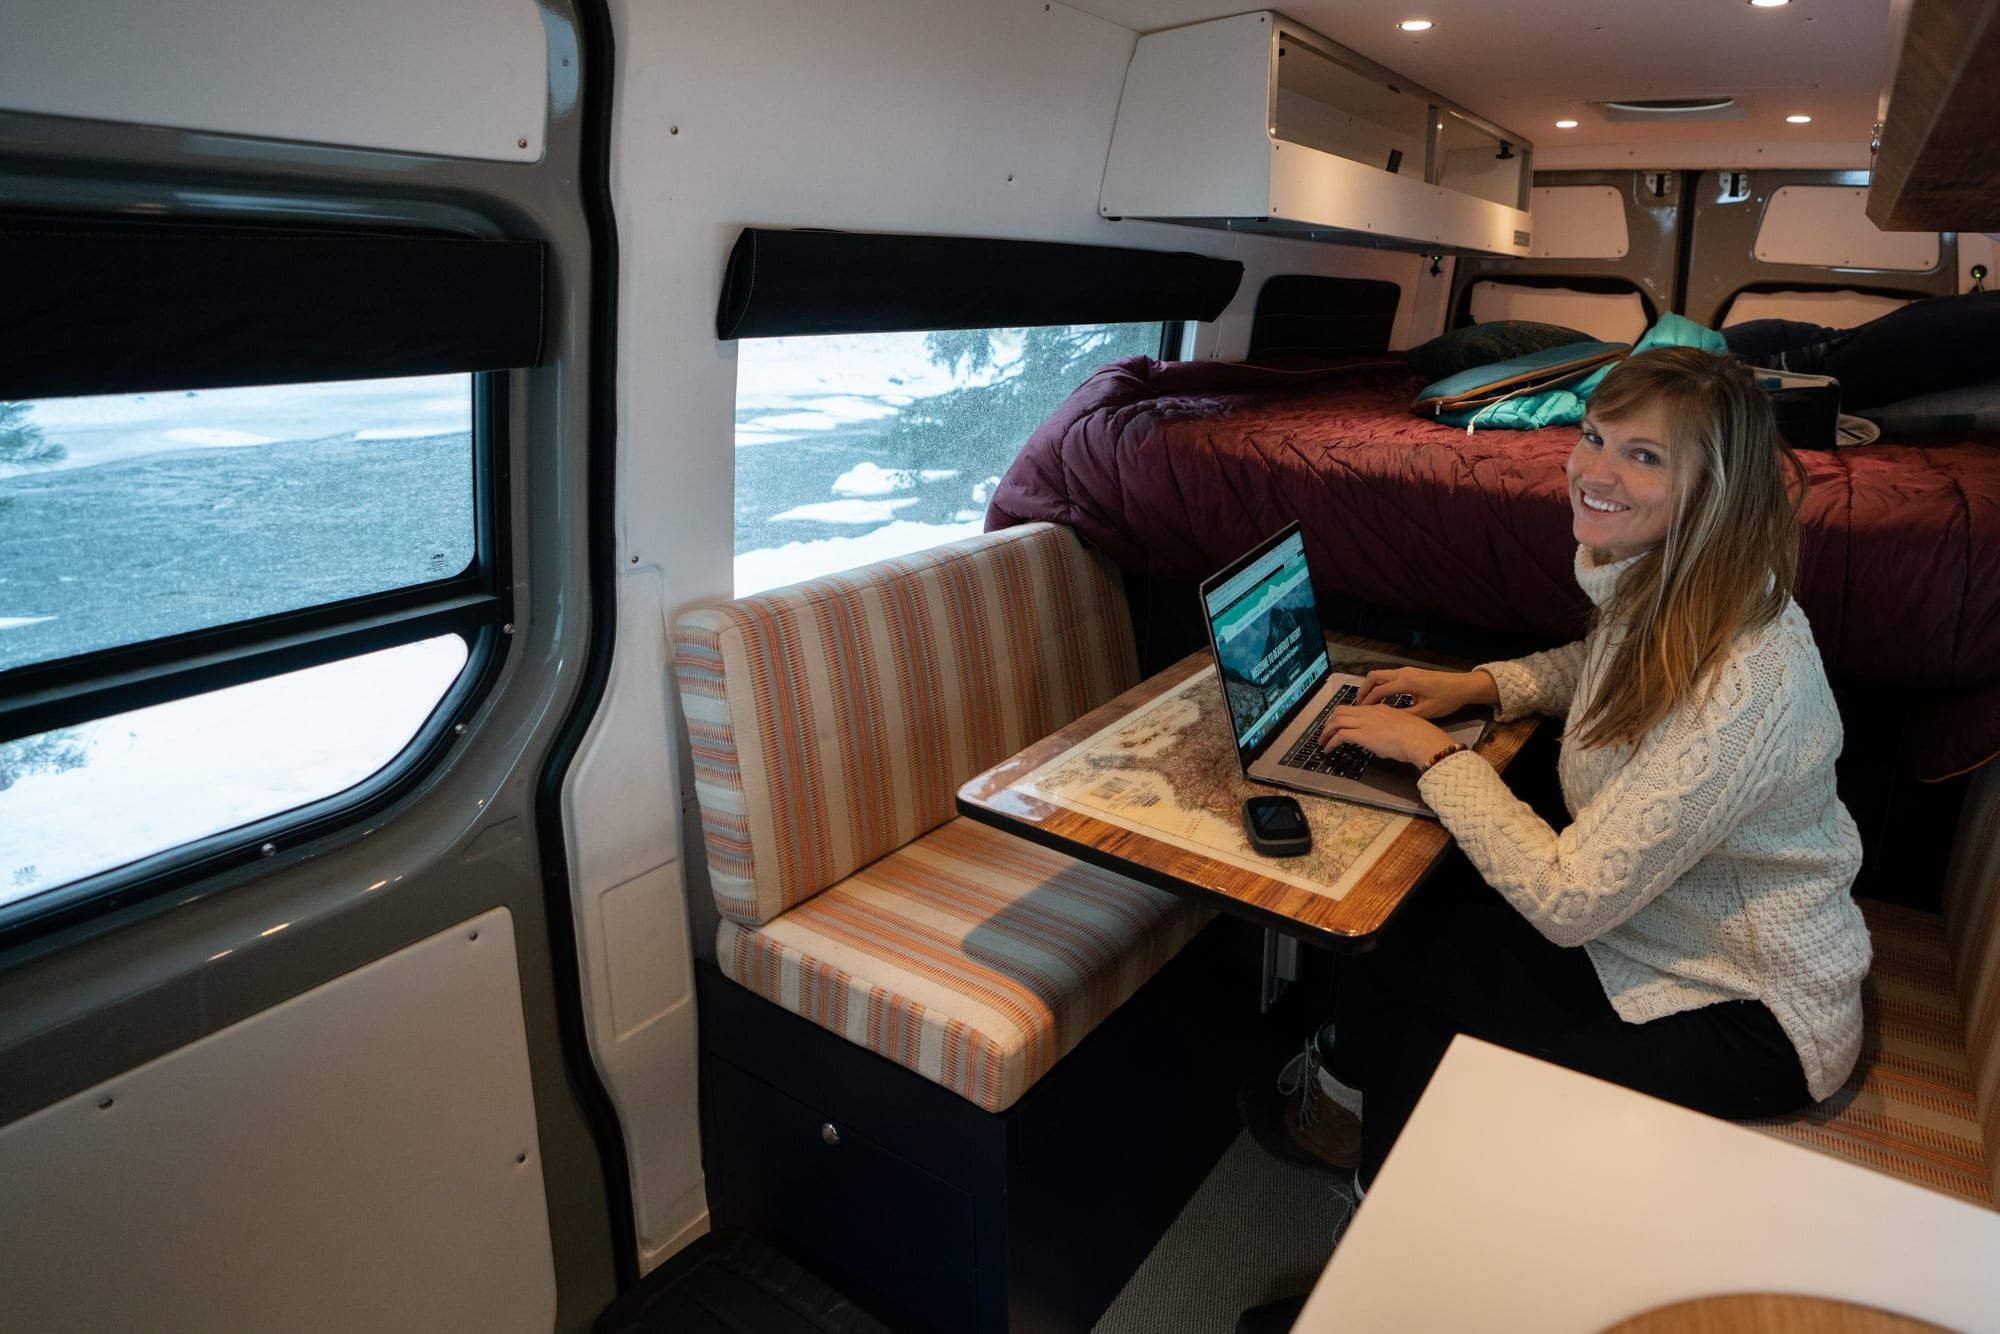 Want to work from the road? Learn about vanlife internet and how to stay connected while camping and traveling in remote areas.